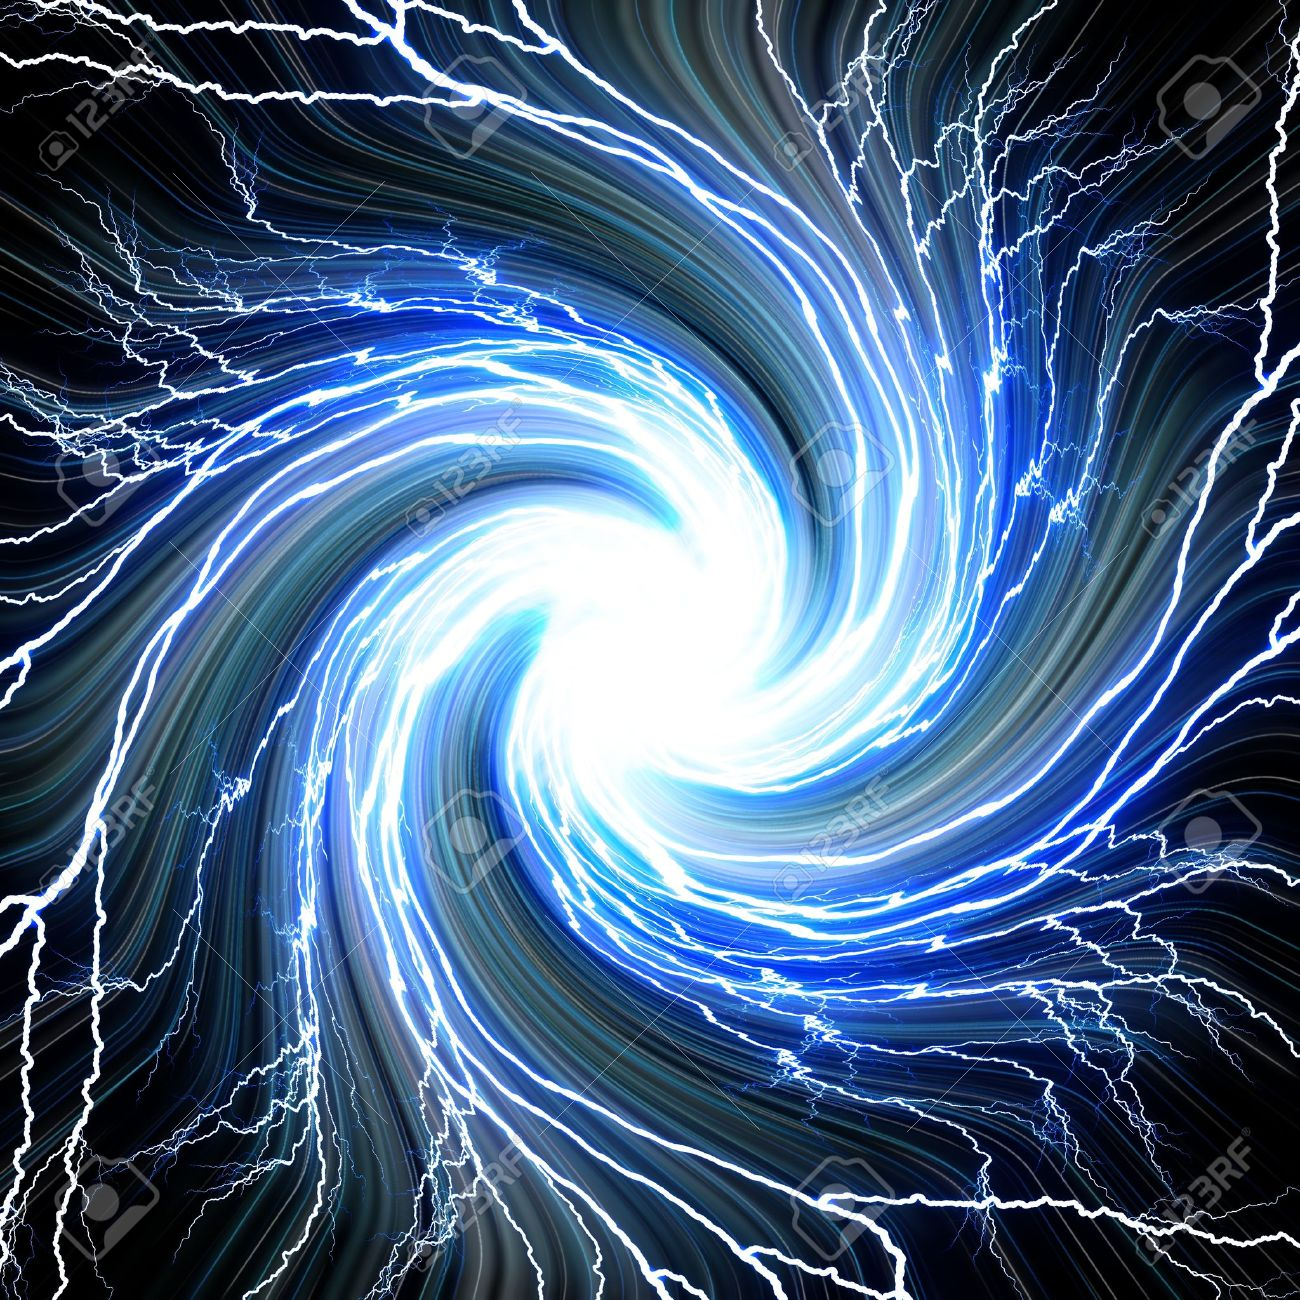 Electric Flash Of Lightning On A Blue Background Stock Photo ... for Electricity Lightning Bolt  54lyp